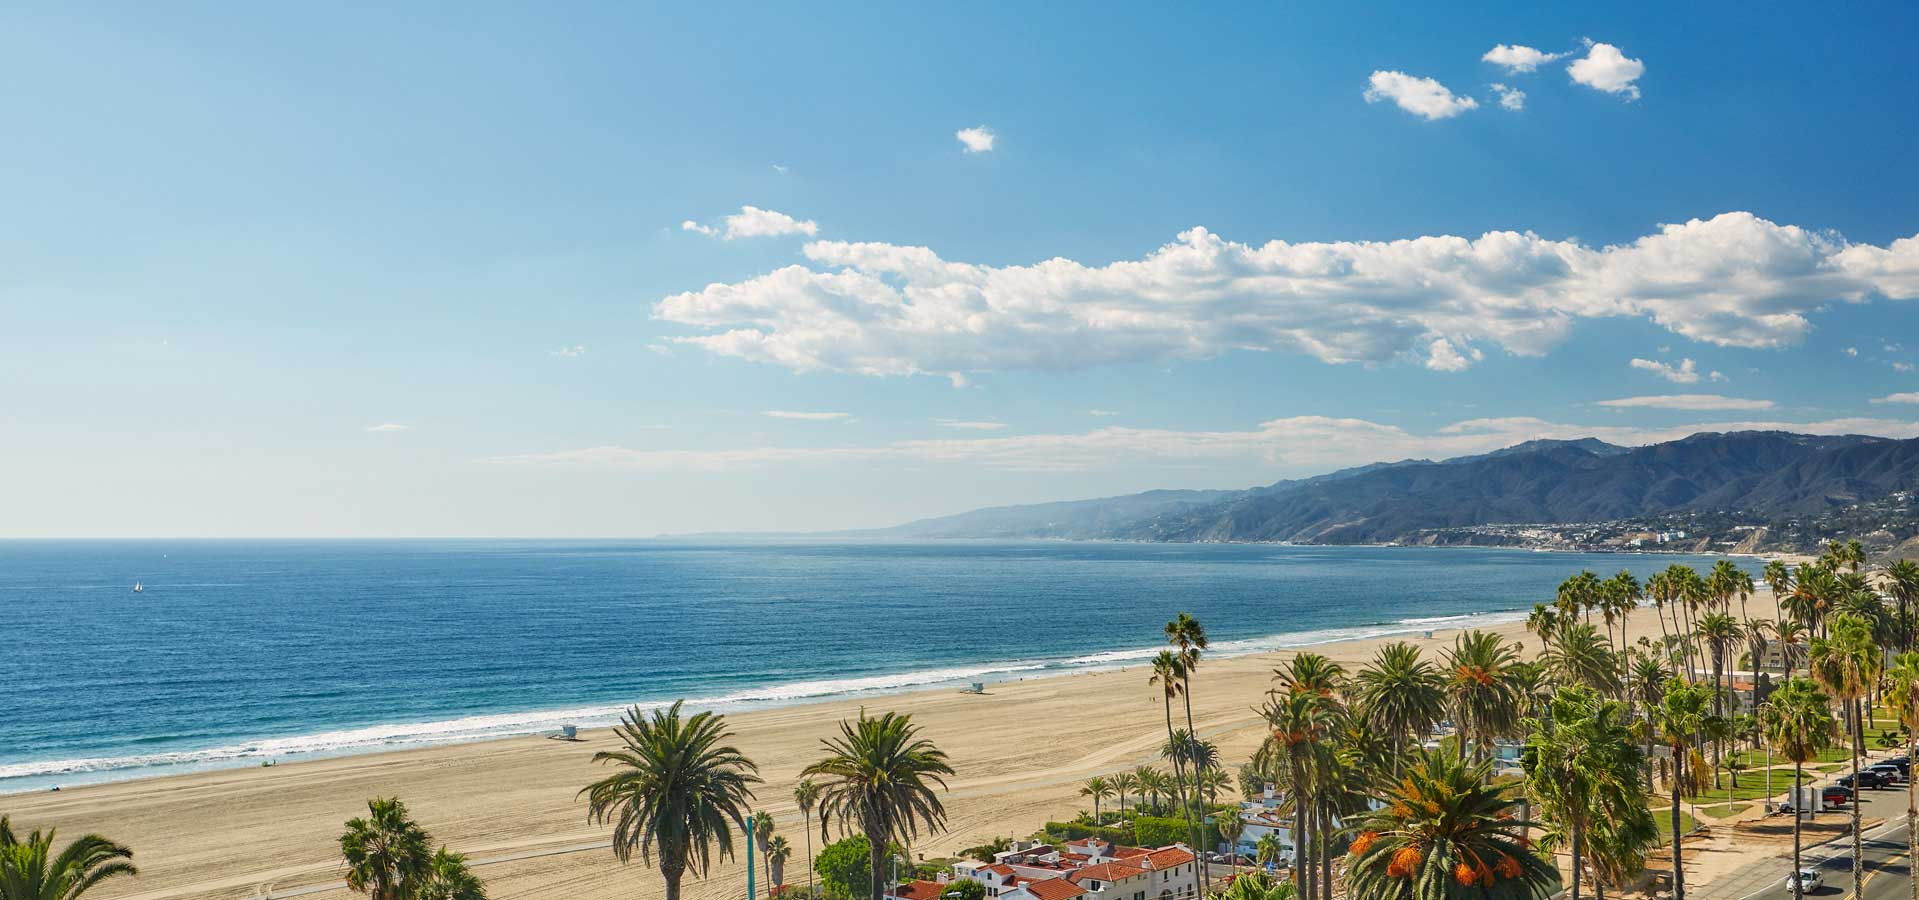 Santa Monica Beach views from Fairmont Miramar Hotel & Bungalows